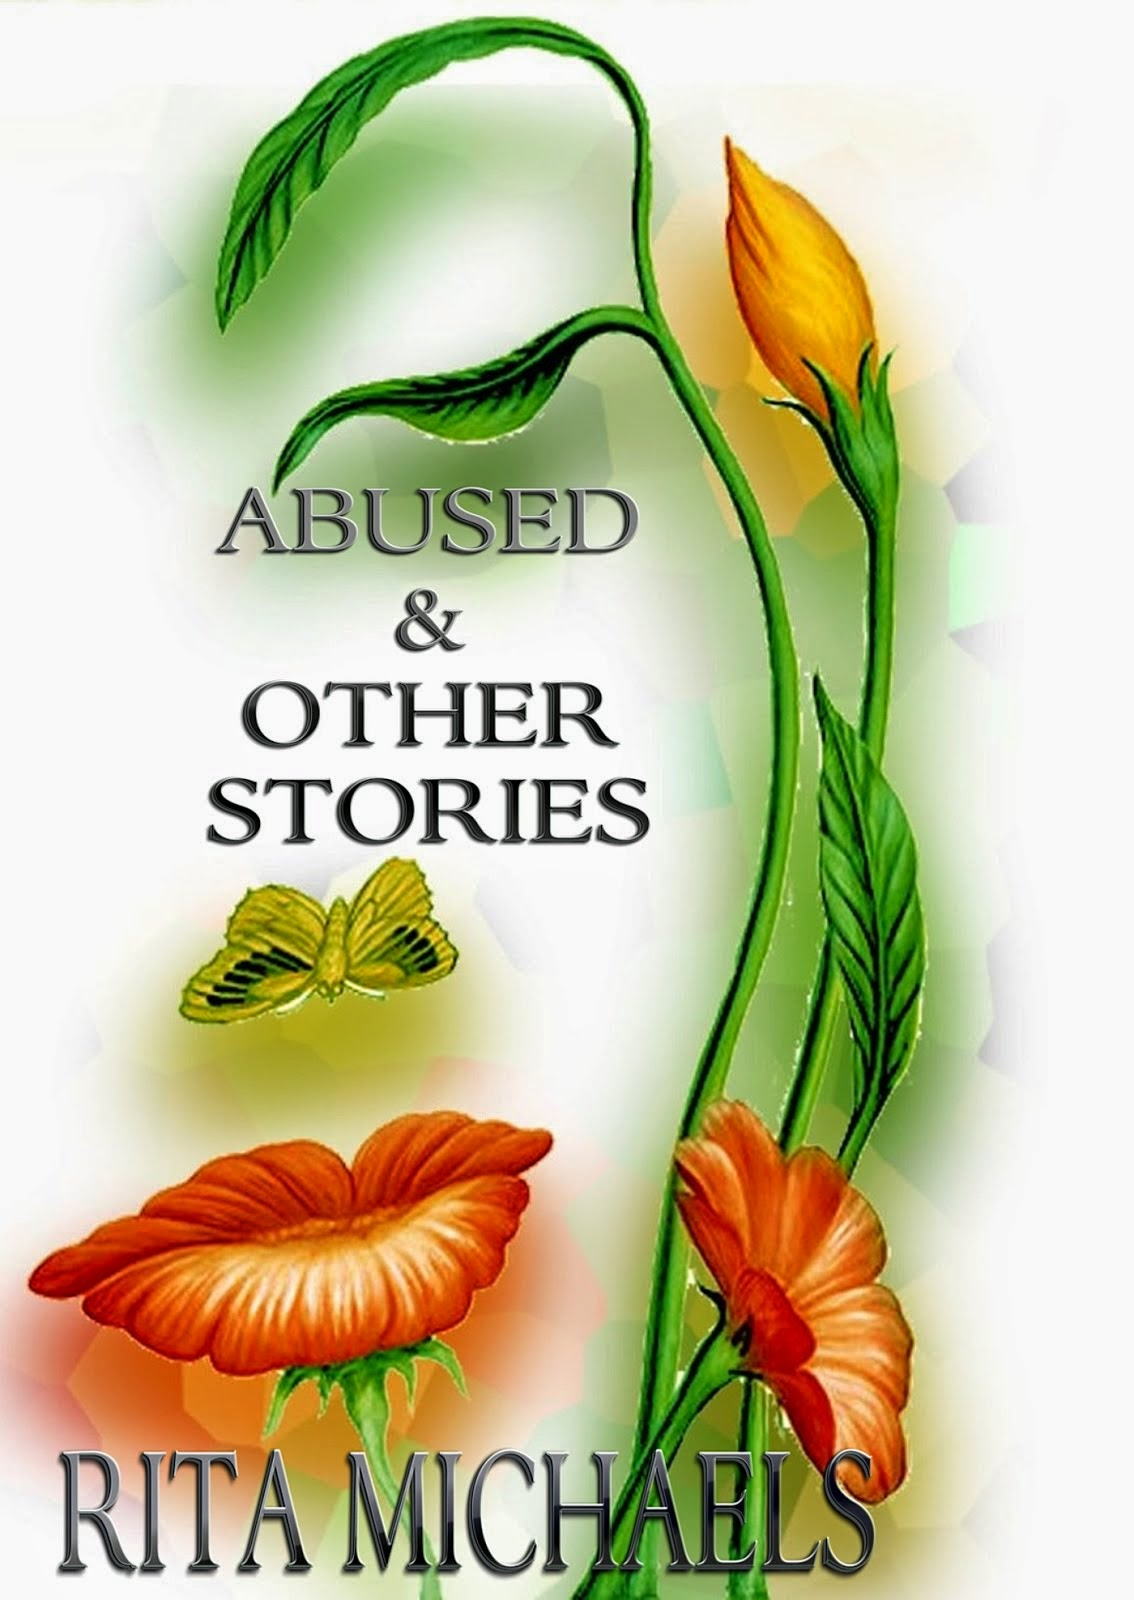 ABUSED & OTHER STORIES